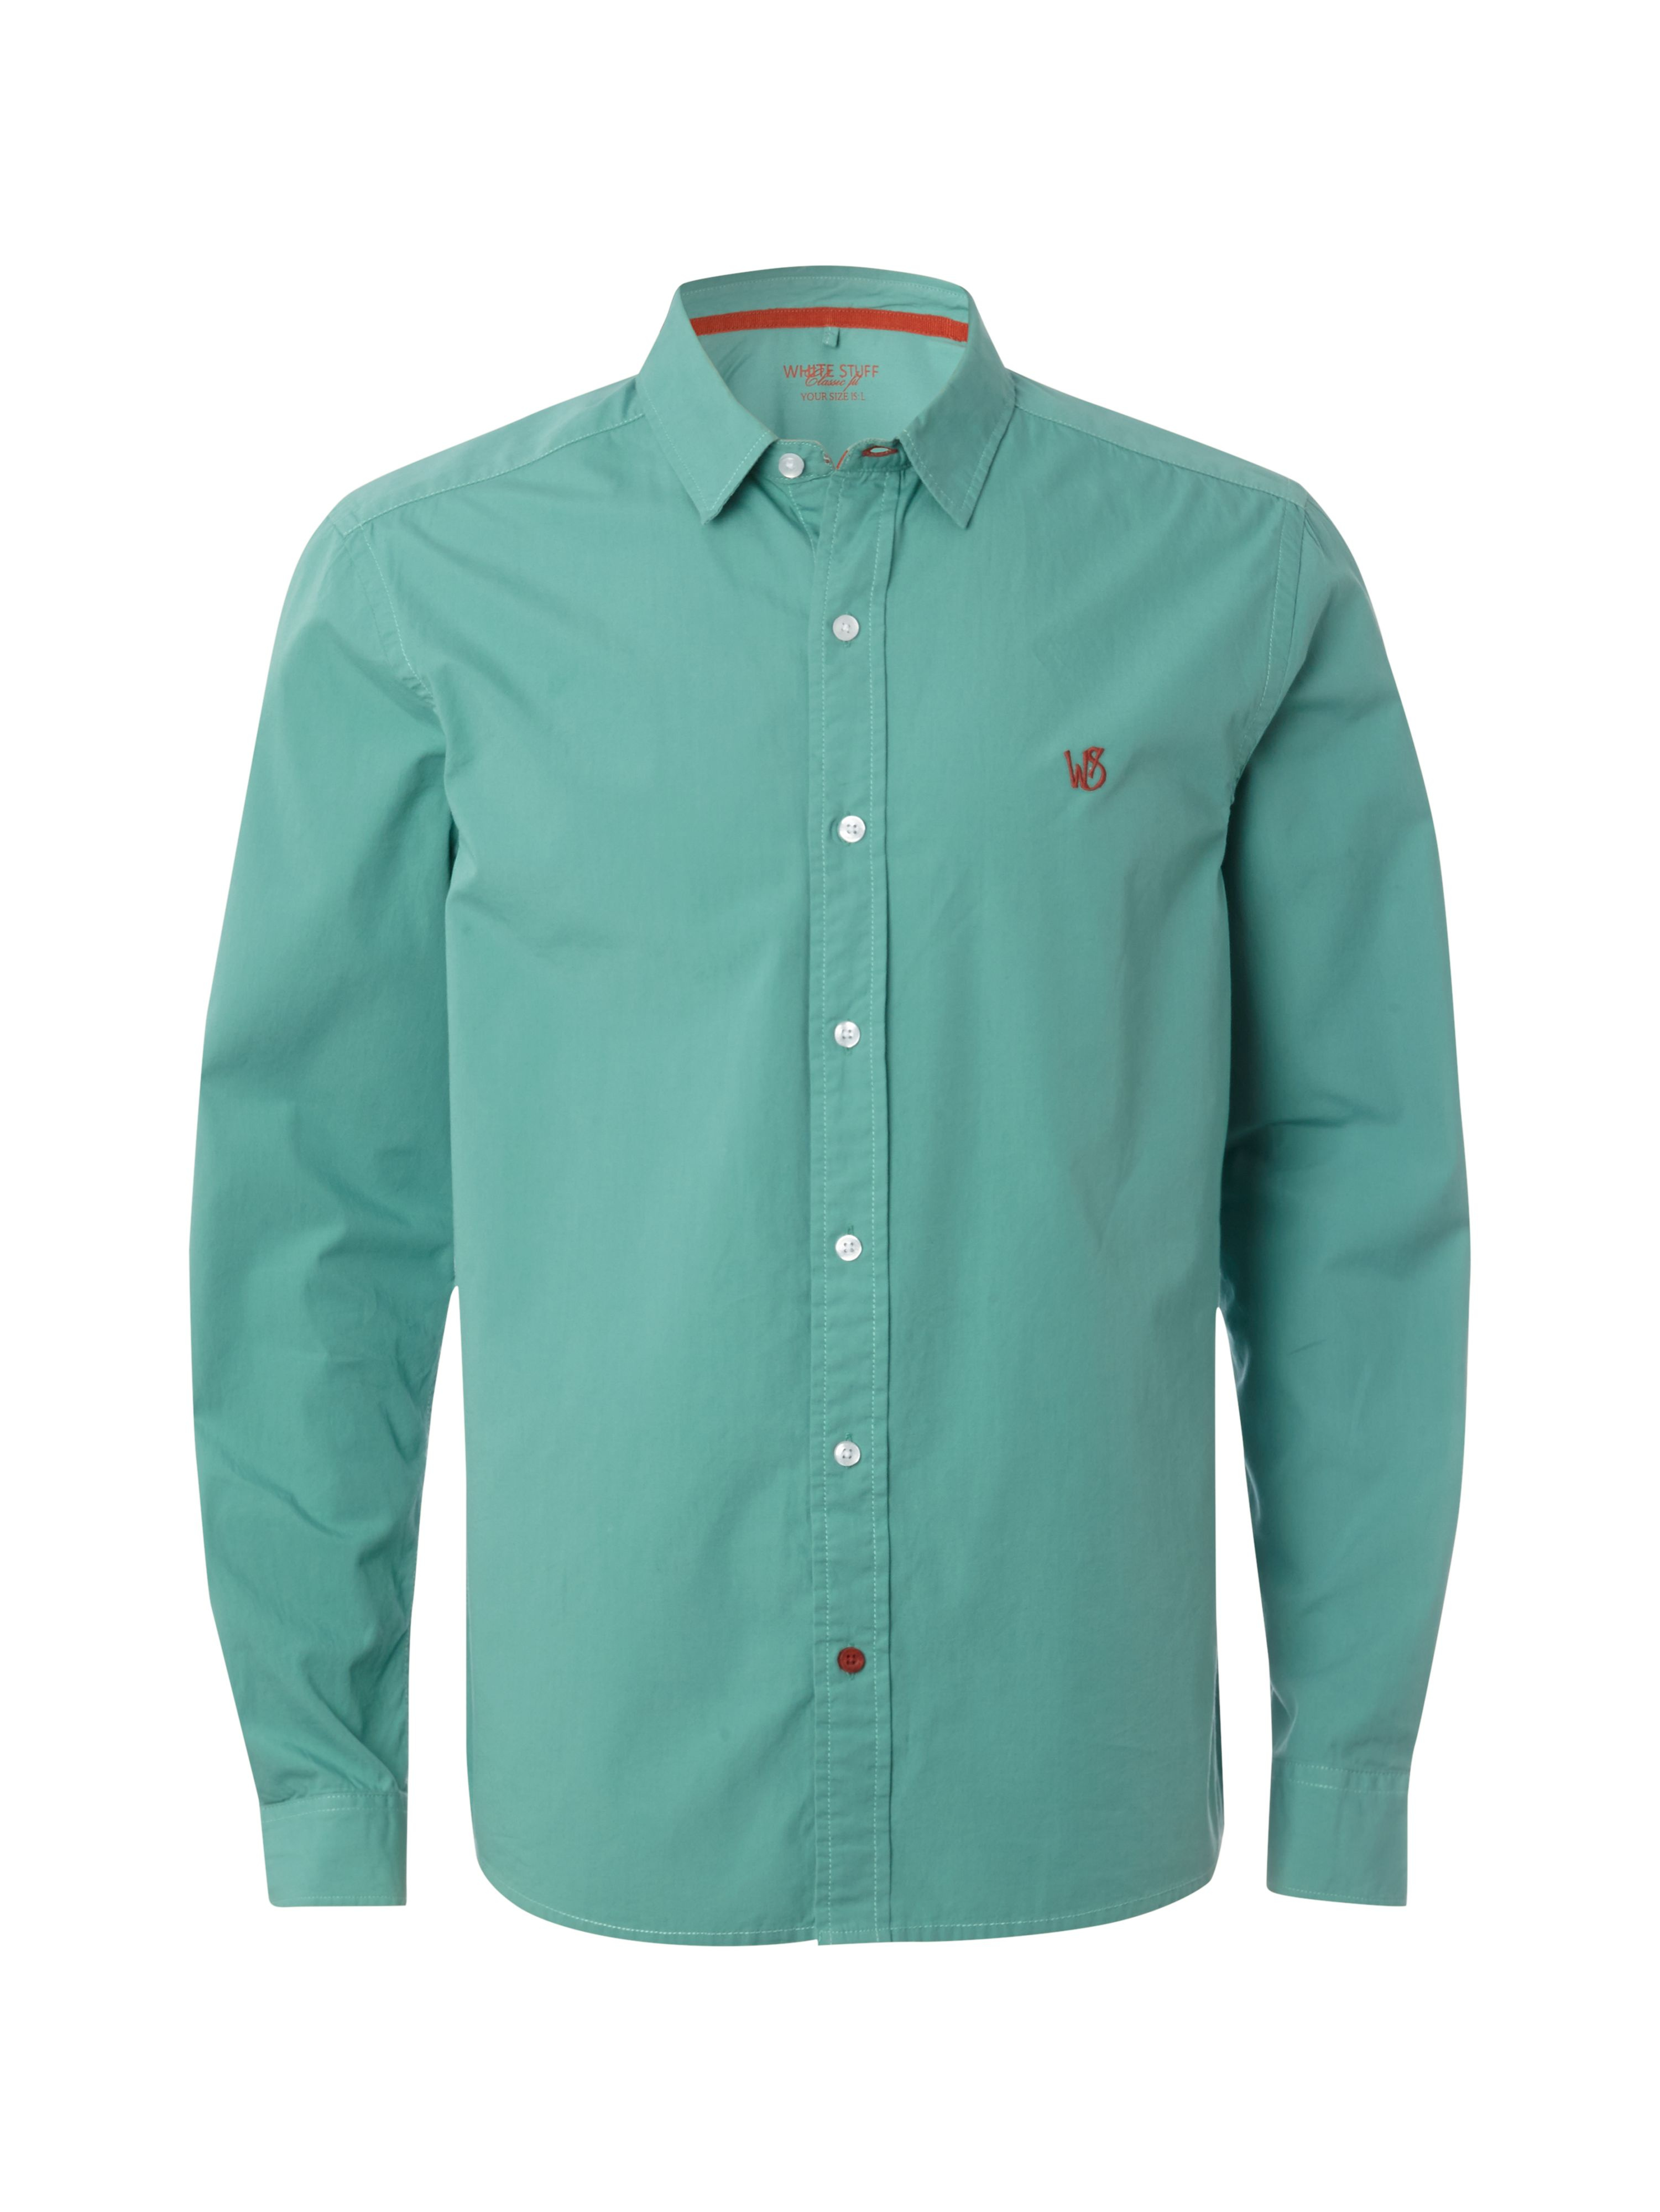 Heartland plain long sleeve shirt